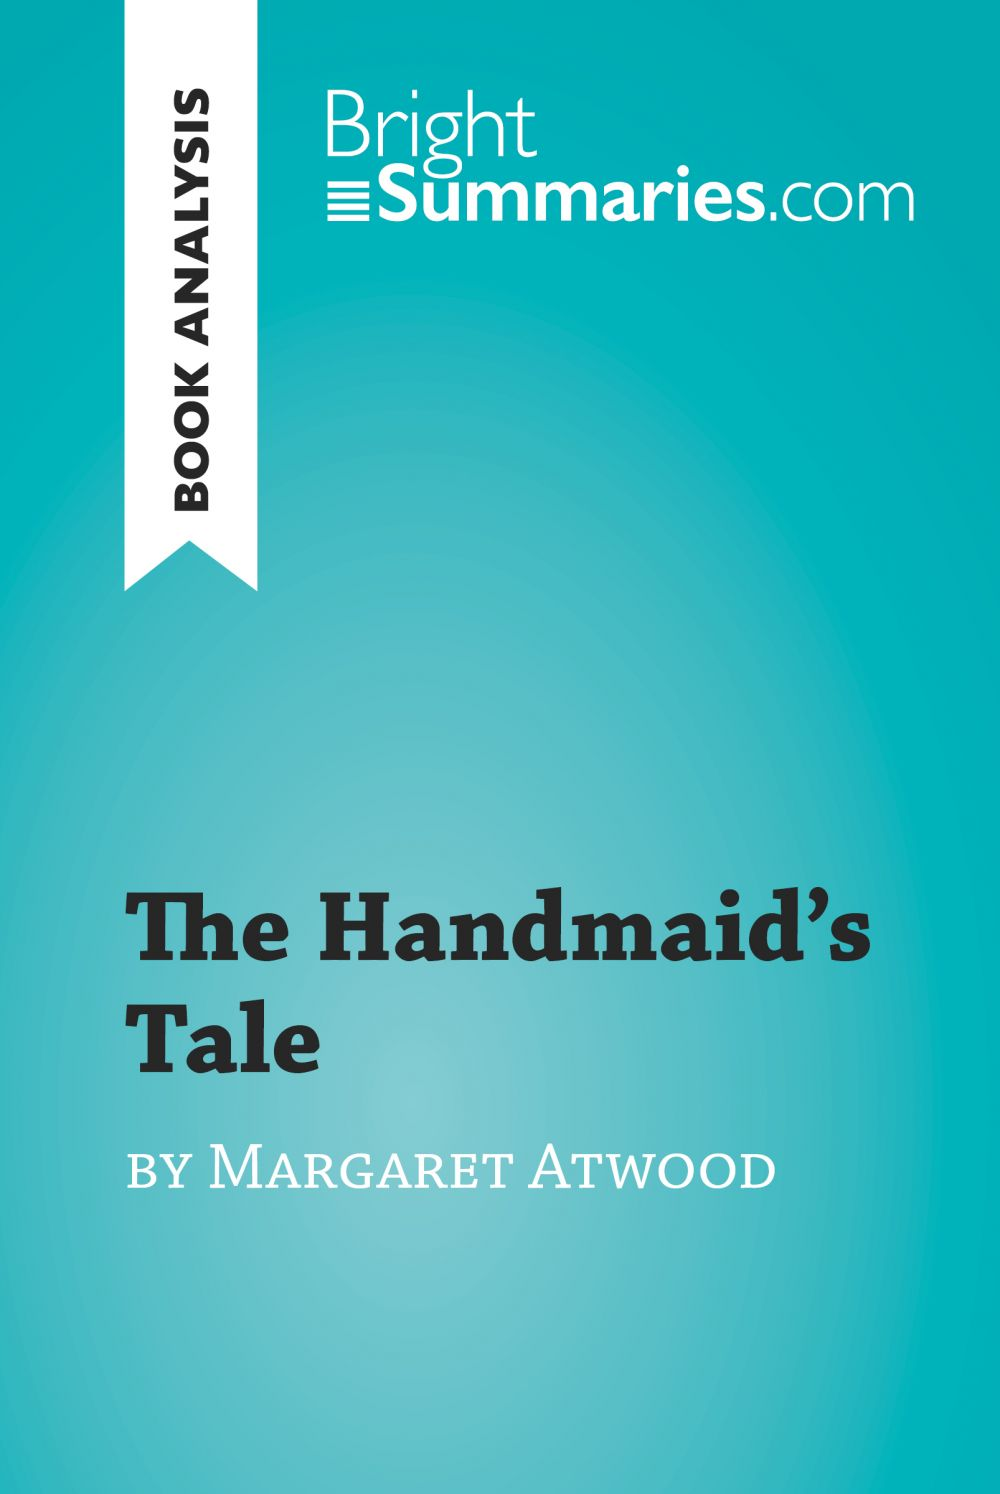 The Handmaid's Tale by Margaret Atwood (Book Analysis)